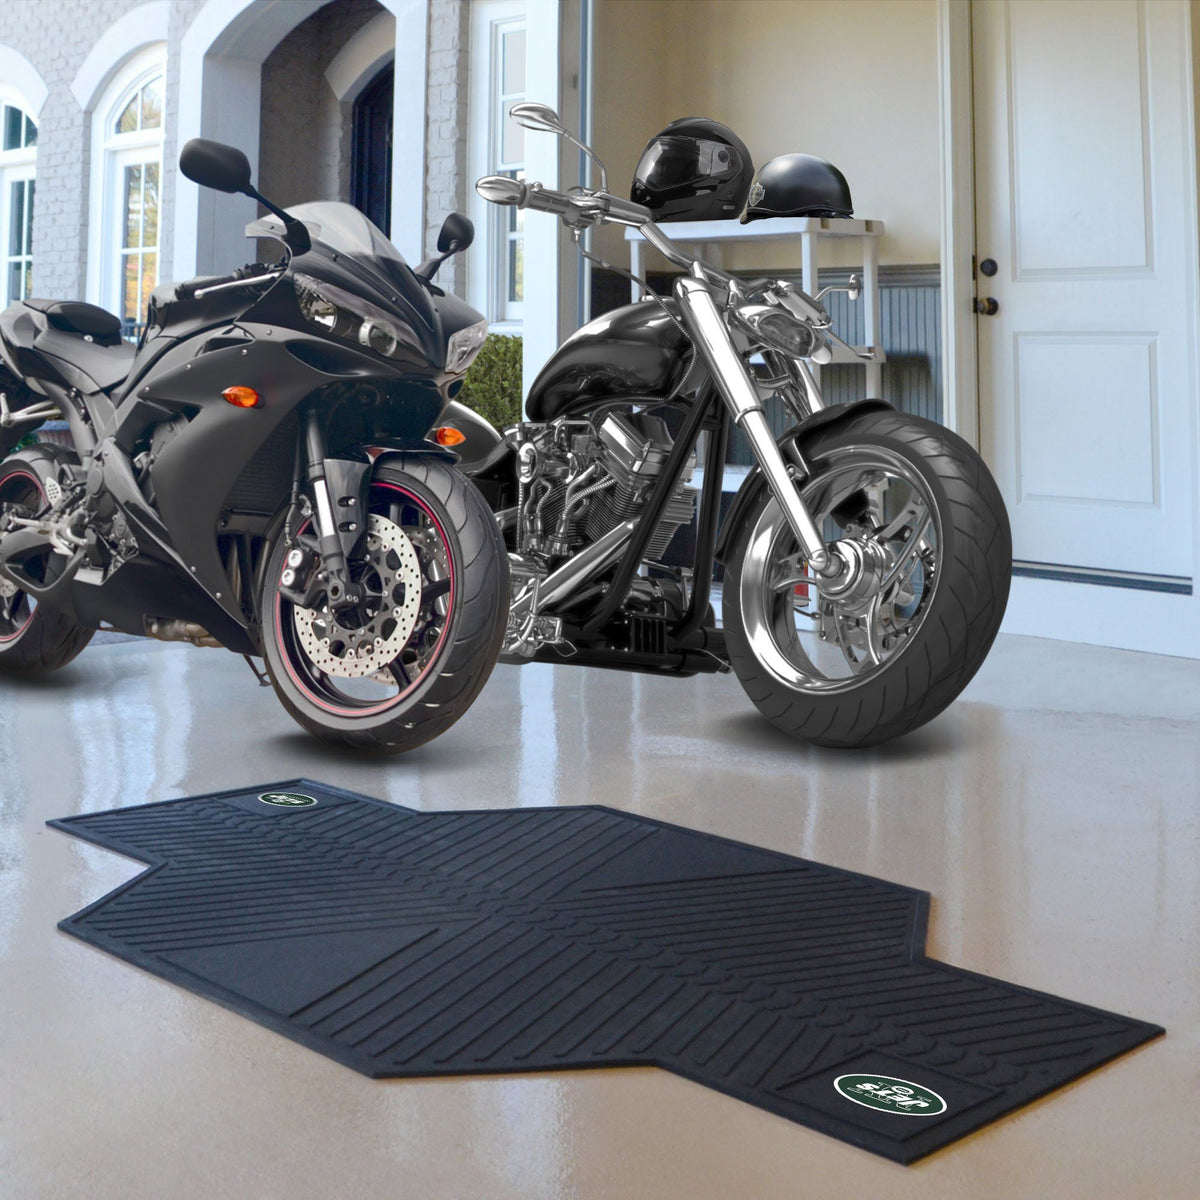 "NFL - Motorcycle Mat, 82.5"" x 42"" NFL Mats, Motorcycle Accessory, Motorcycle Mat, NFL, Auto Fan Mats New York Jets"